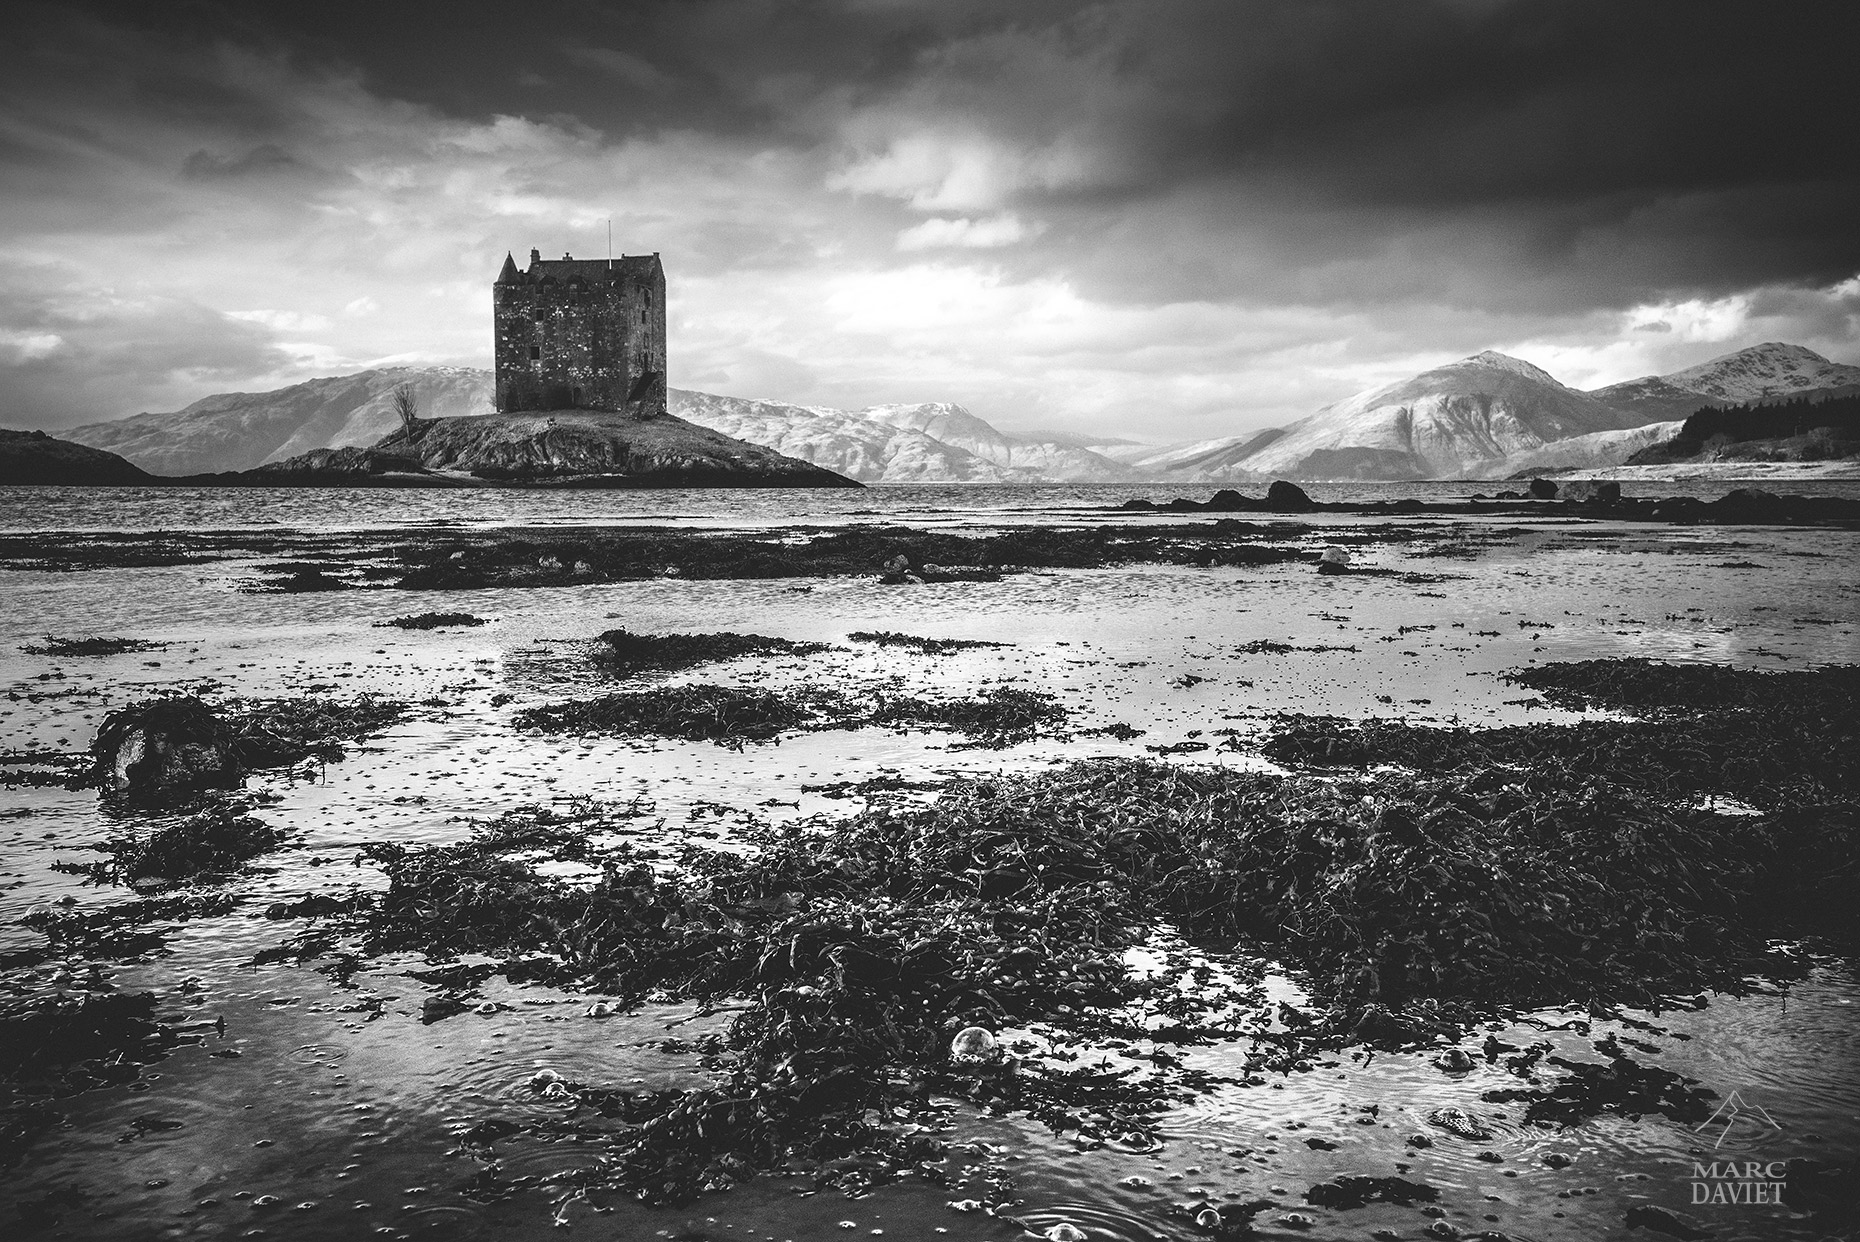 Castle Stalker - Scotland - Marc Daviet Photography